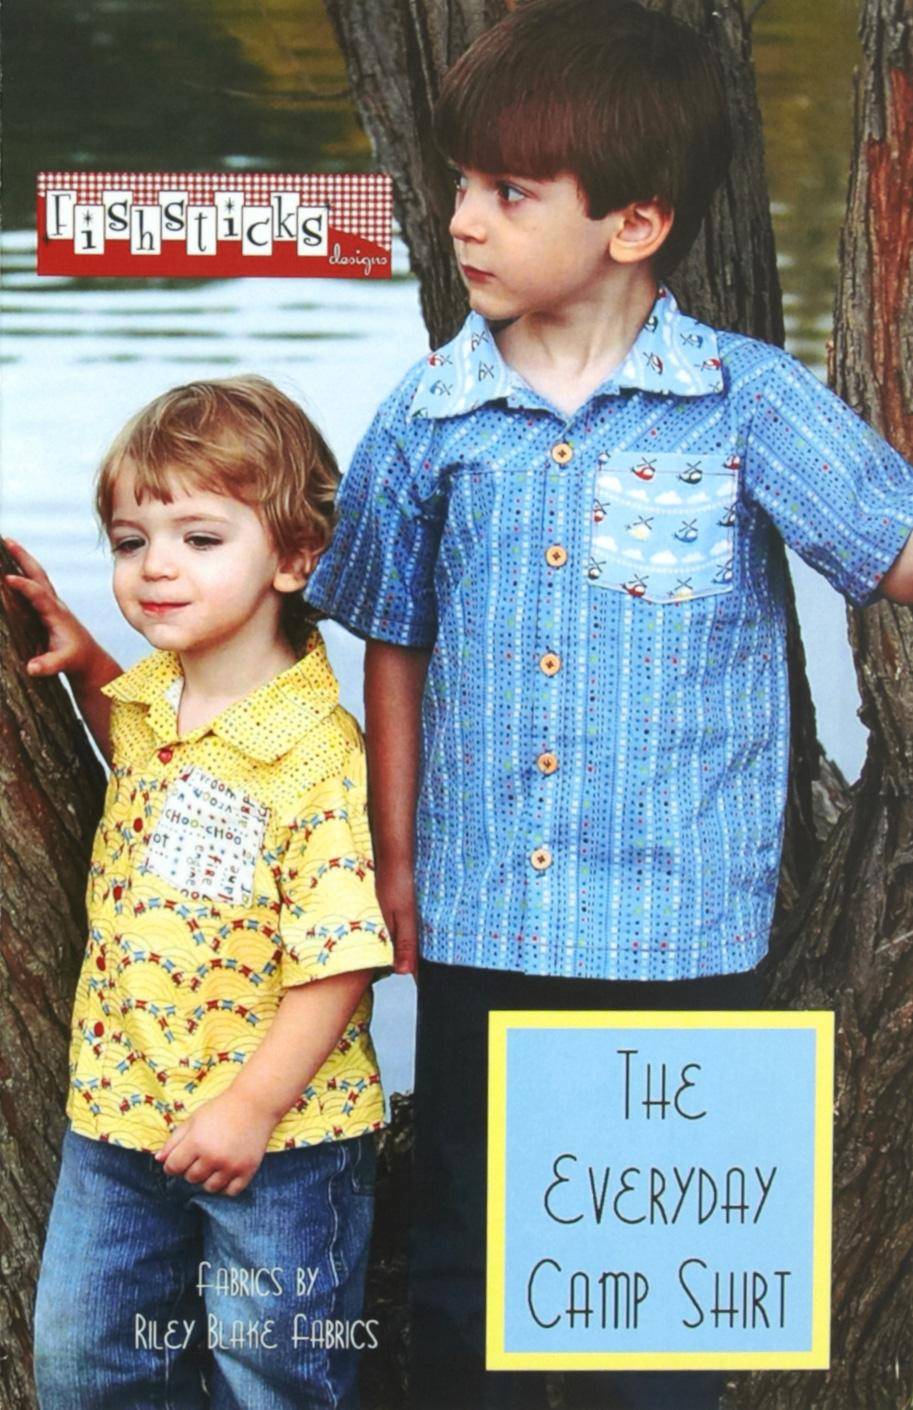 Fishsticks Designs Camp Shirt Boys Pattern